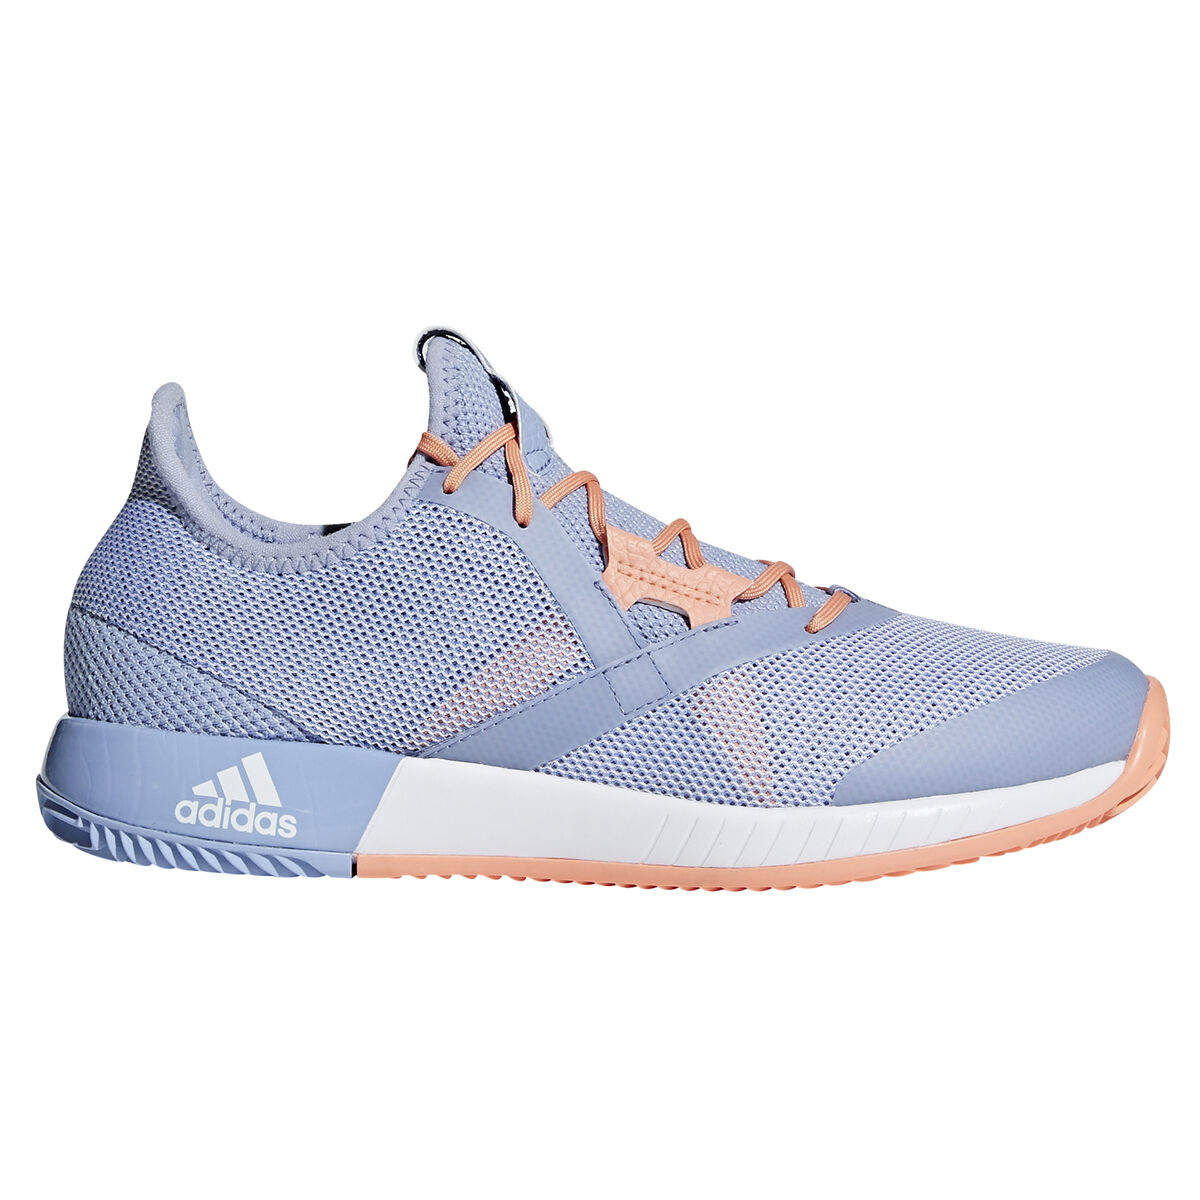 163a19d098aef adidas adizero Defiant Bounce Women s Tennis Shoe - Blue Orange ...